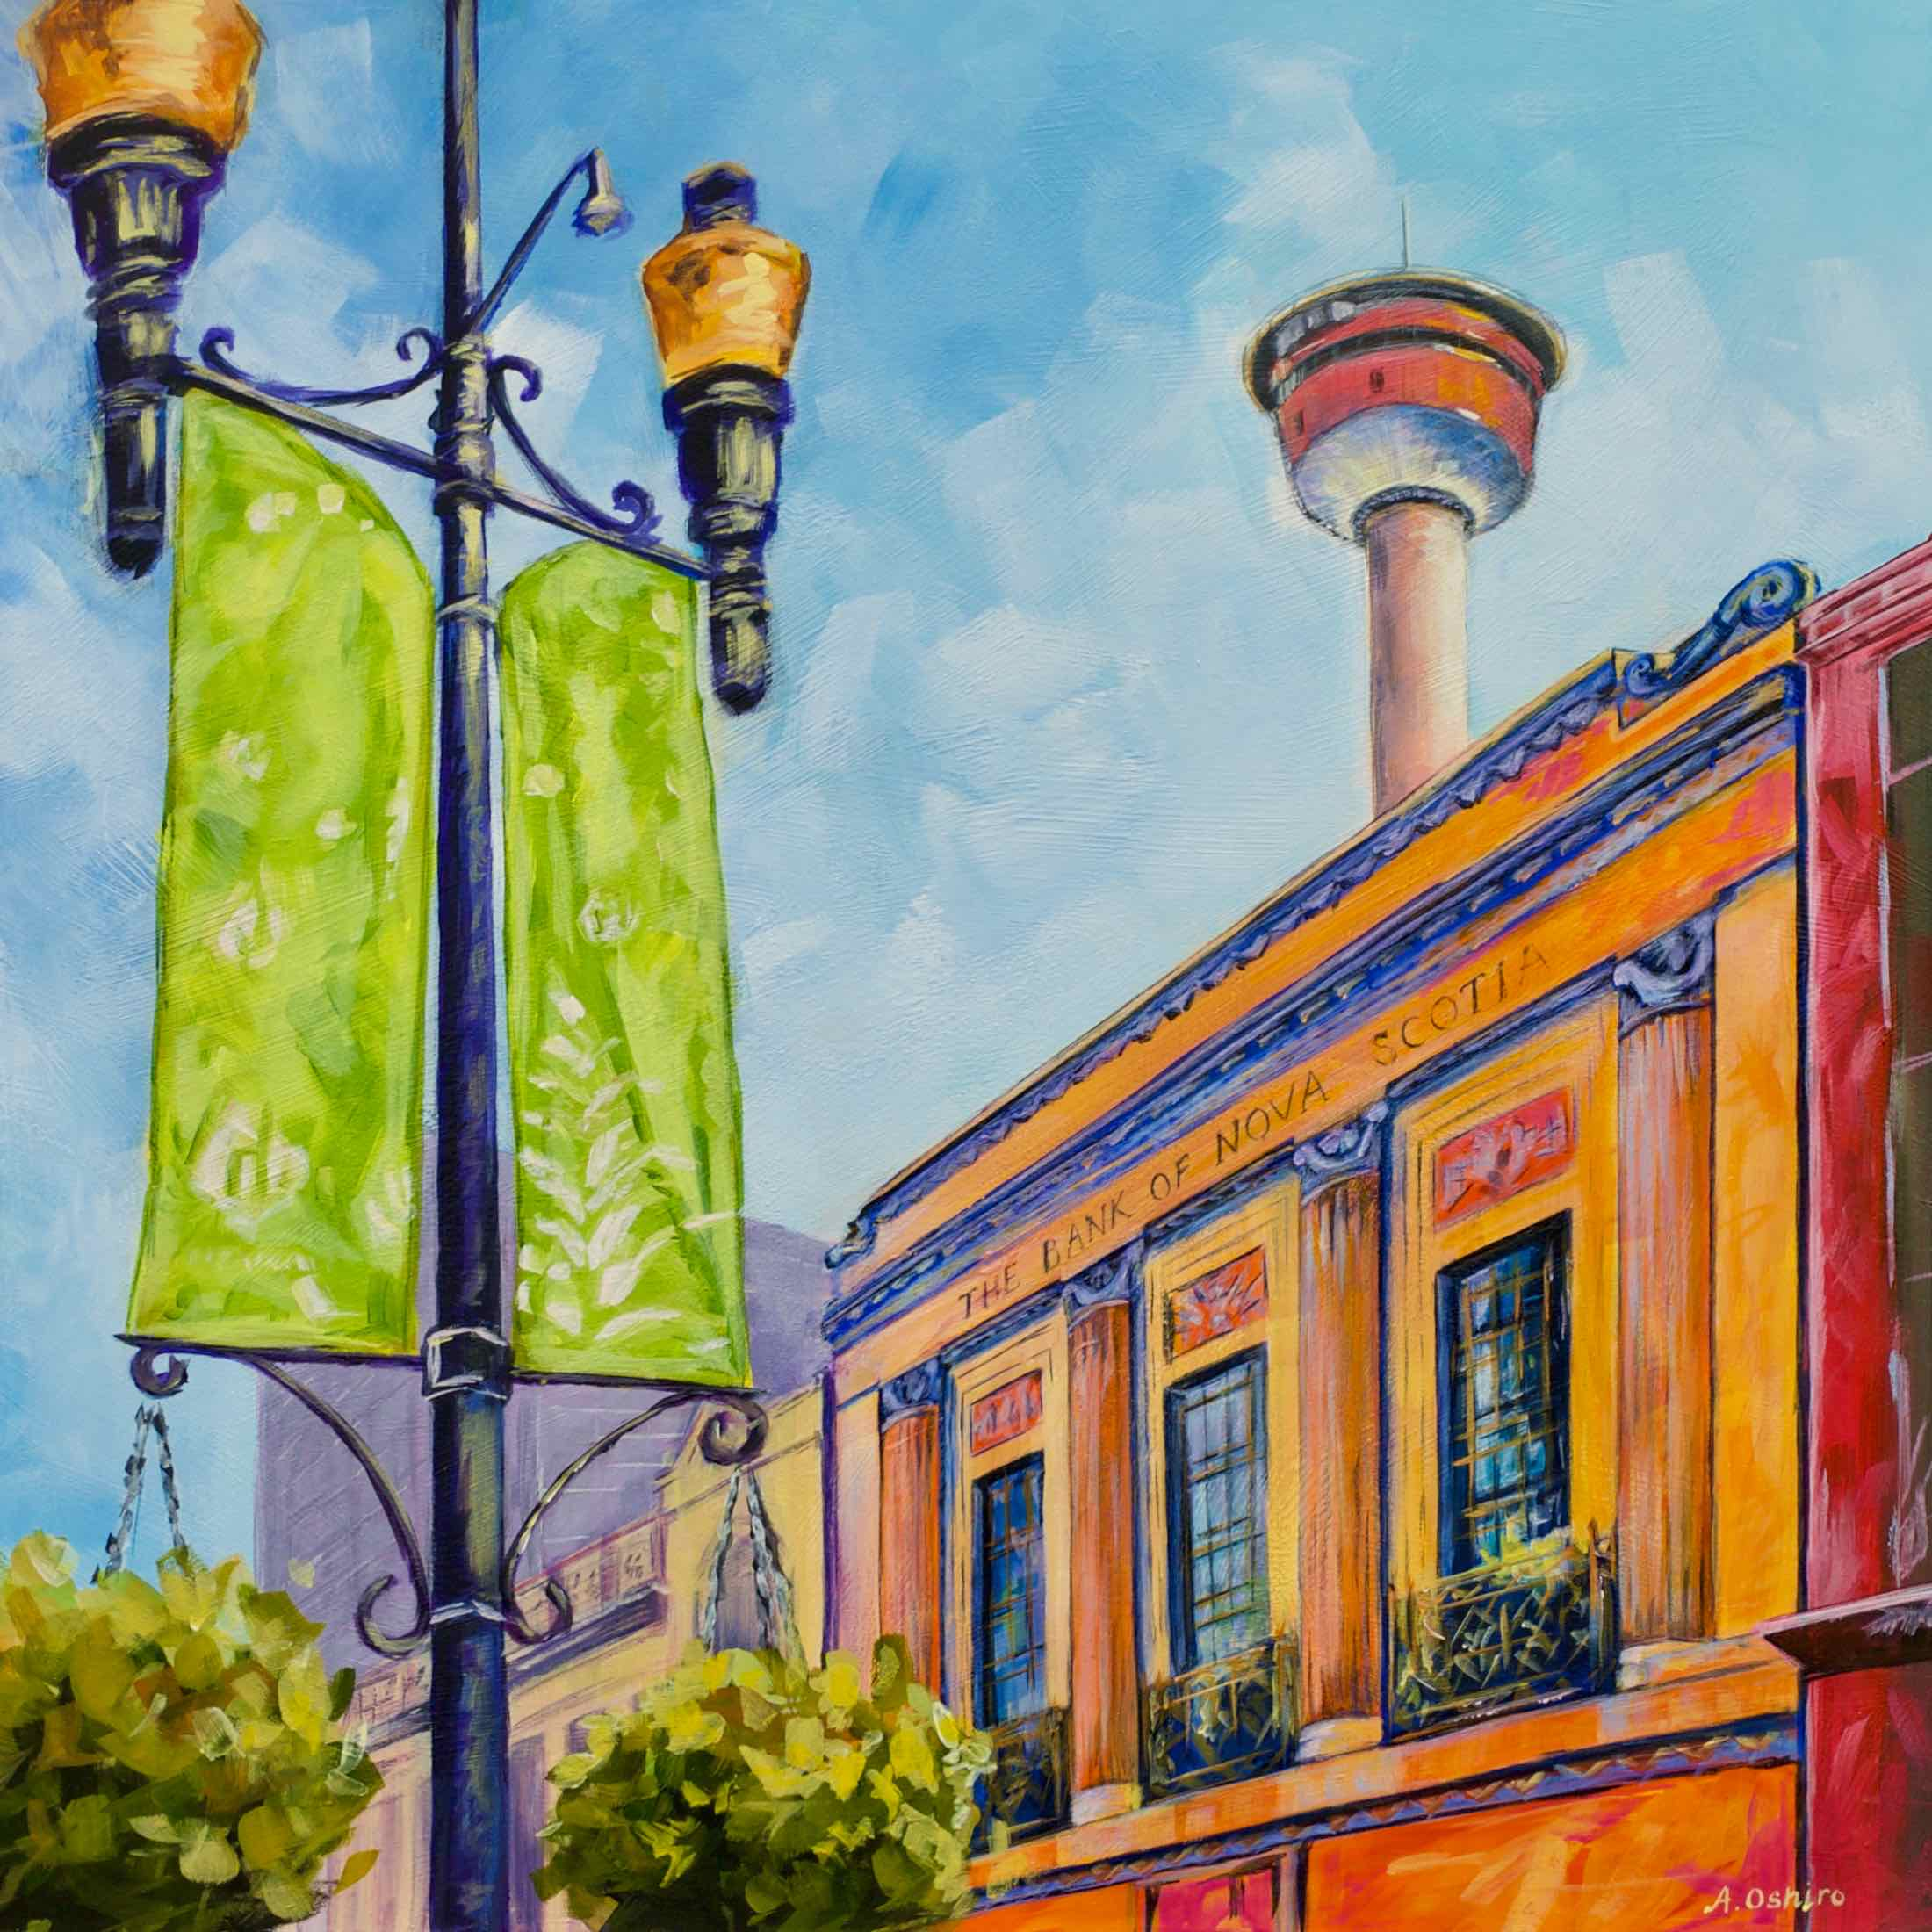 """- No. 5 - '8th Ave. and 1st St. SW – Scotia Bank'20x20"""" Acrylic on Cradled Birch PanelThe Bank of Nova Scotia on Stephen Avenue was constructed in 1930 and operated as a bank until 1976. It is now the home of The Bank & Baron P.U.B. In the distance is one of Calgary's most well known landmarks, the Calgary Tower. This 190.8 meter tall observation tower was open to the public in 1968."""